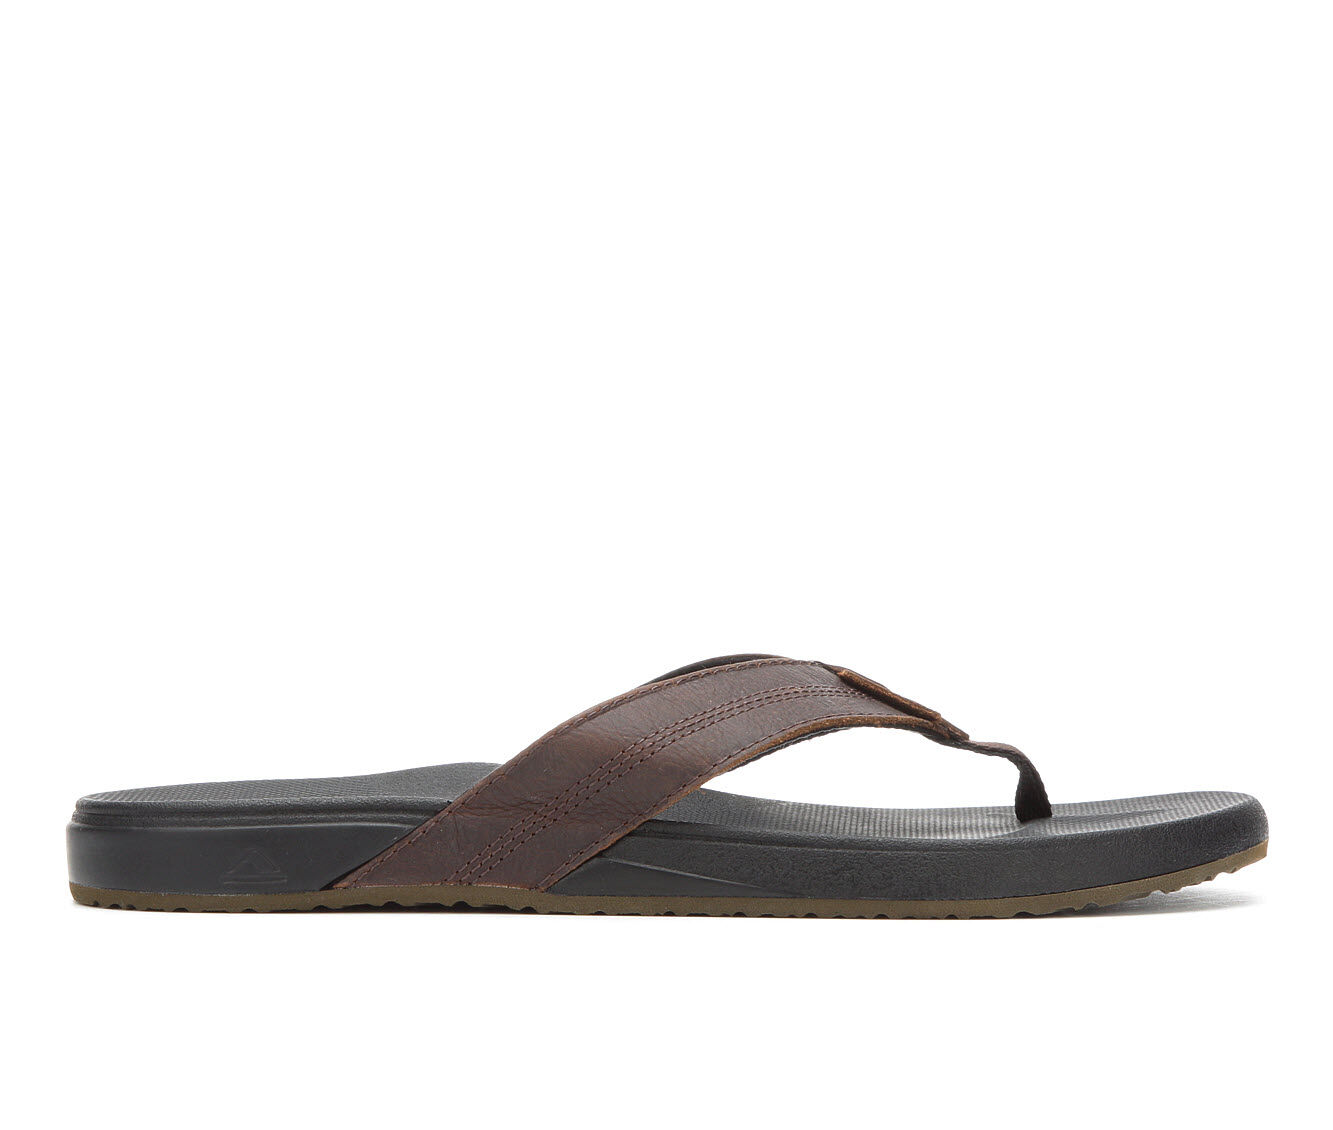 Men's Reef Cushion Bounce Phantom Leather Flip-Flops Black/Brown